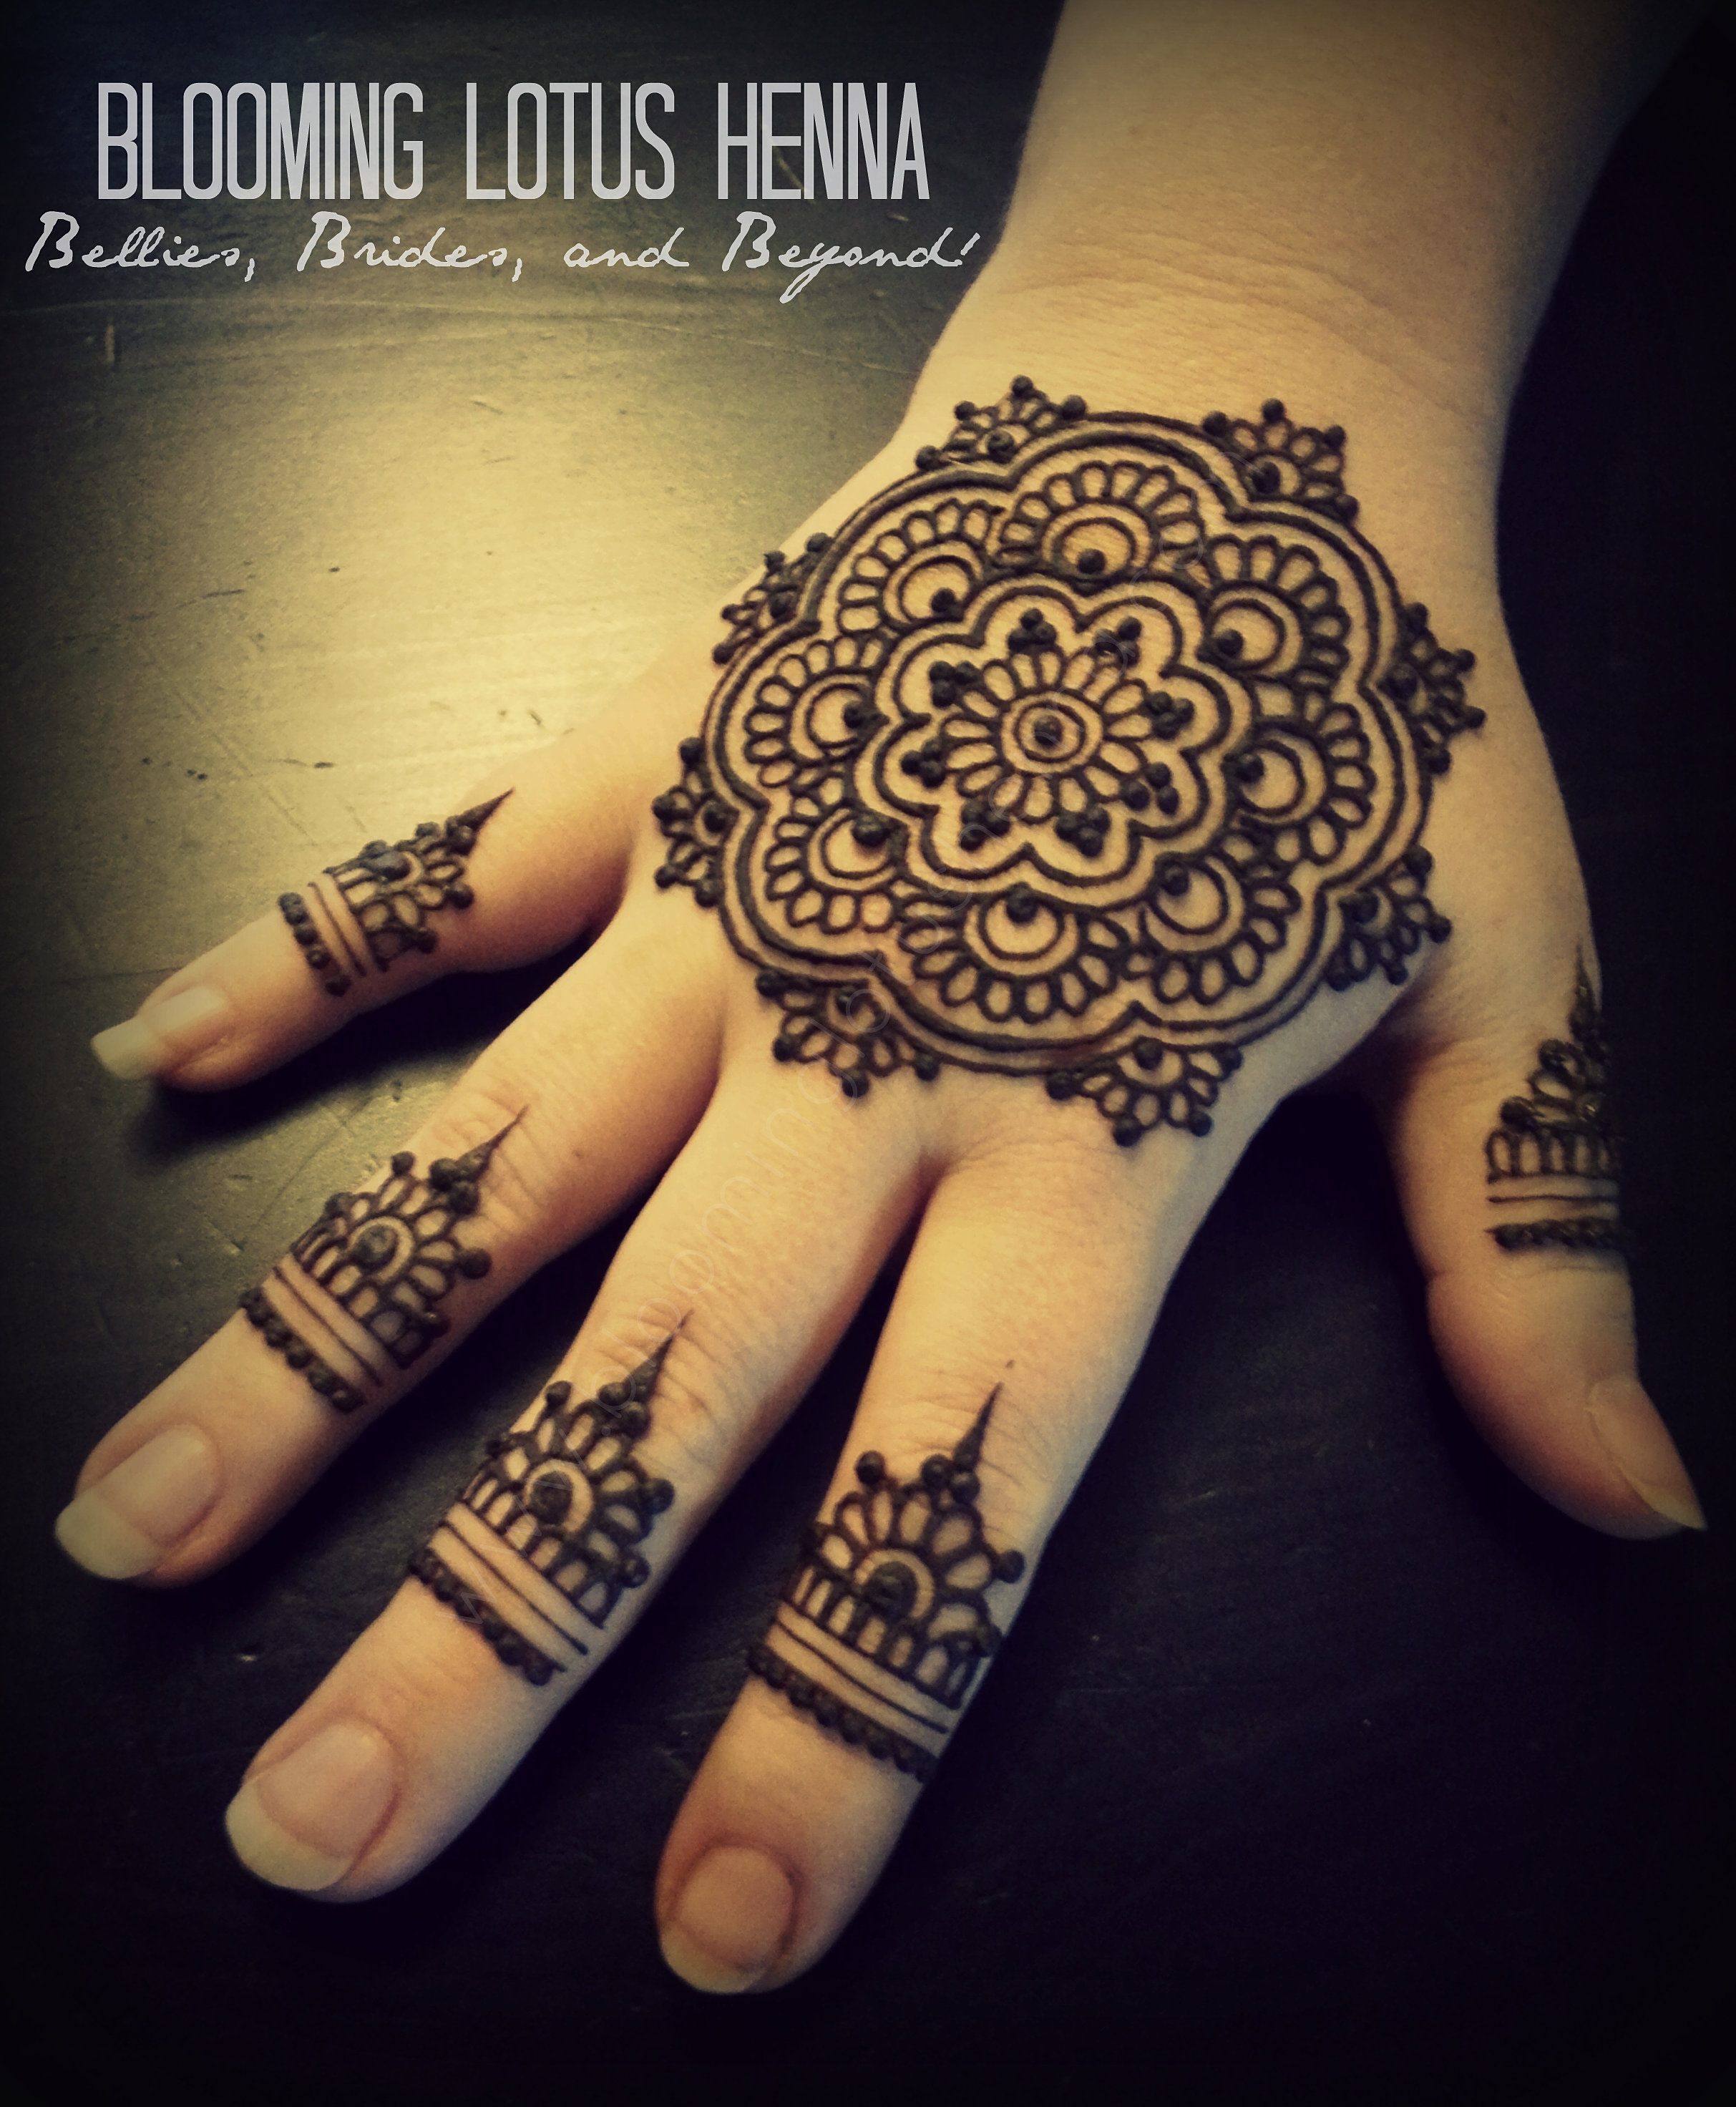 Blooming lotus henna indian bridal fusion henna for Henna tattoo fingers